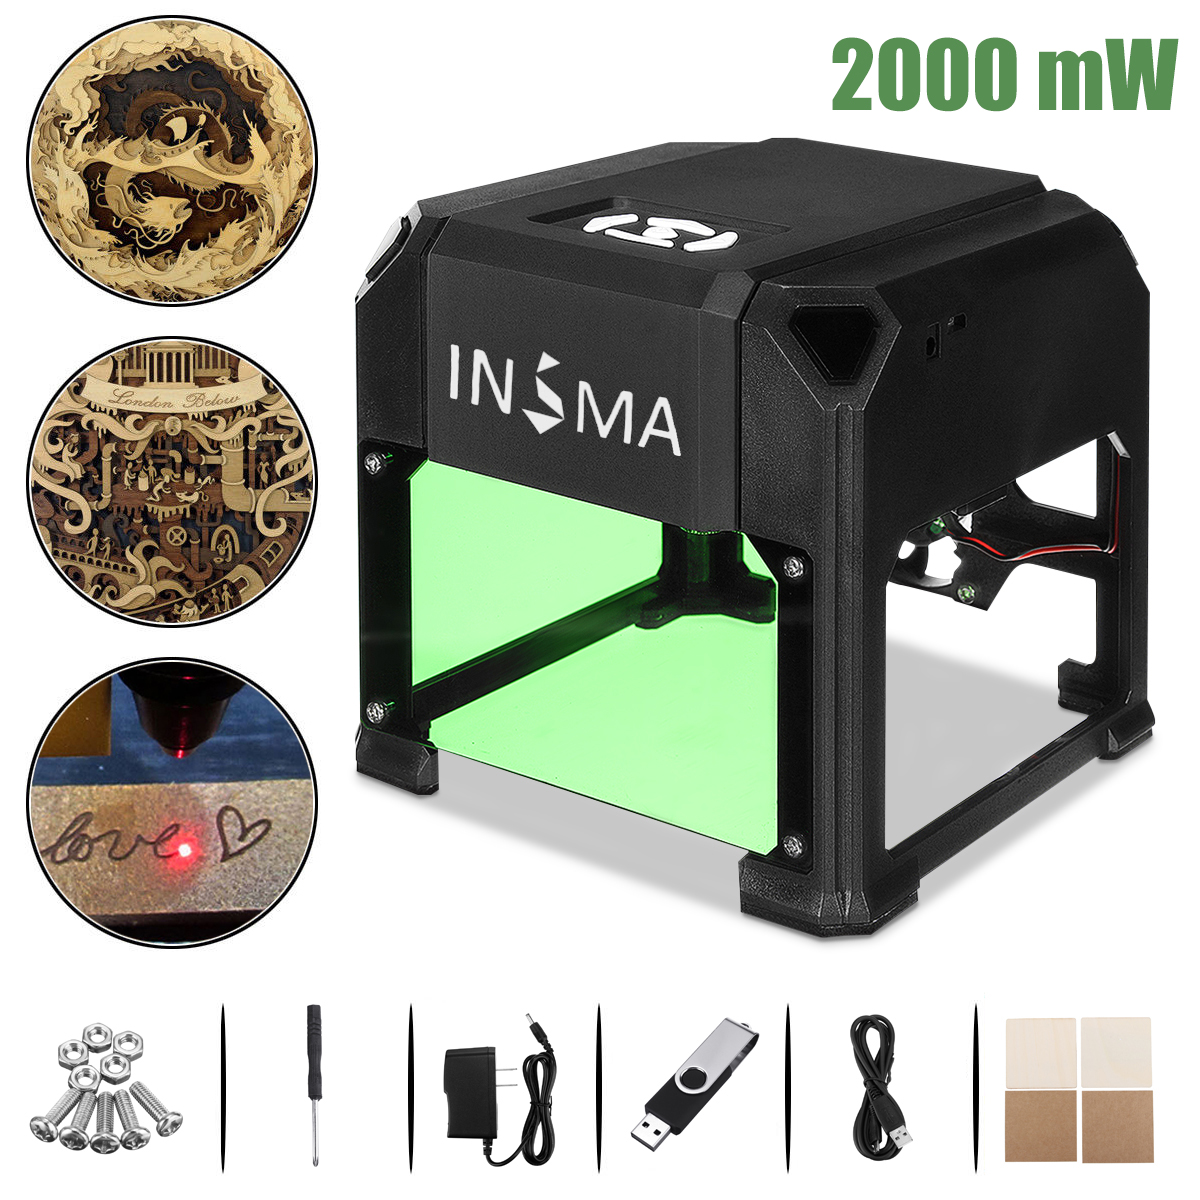 2000/3000 mW CNC Laser Stecher DIY Logo Mark Drucker Cutter Laser Gravur Carving Maschine Für Windows XP/7/ 8/10 für MAC OS